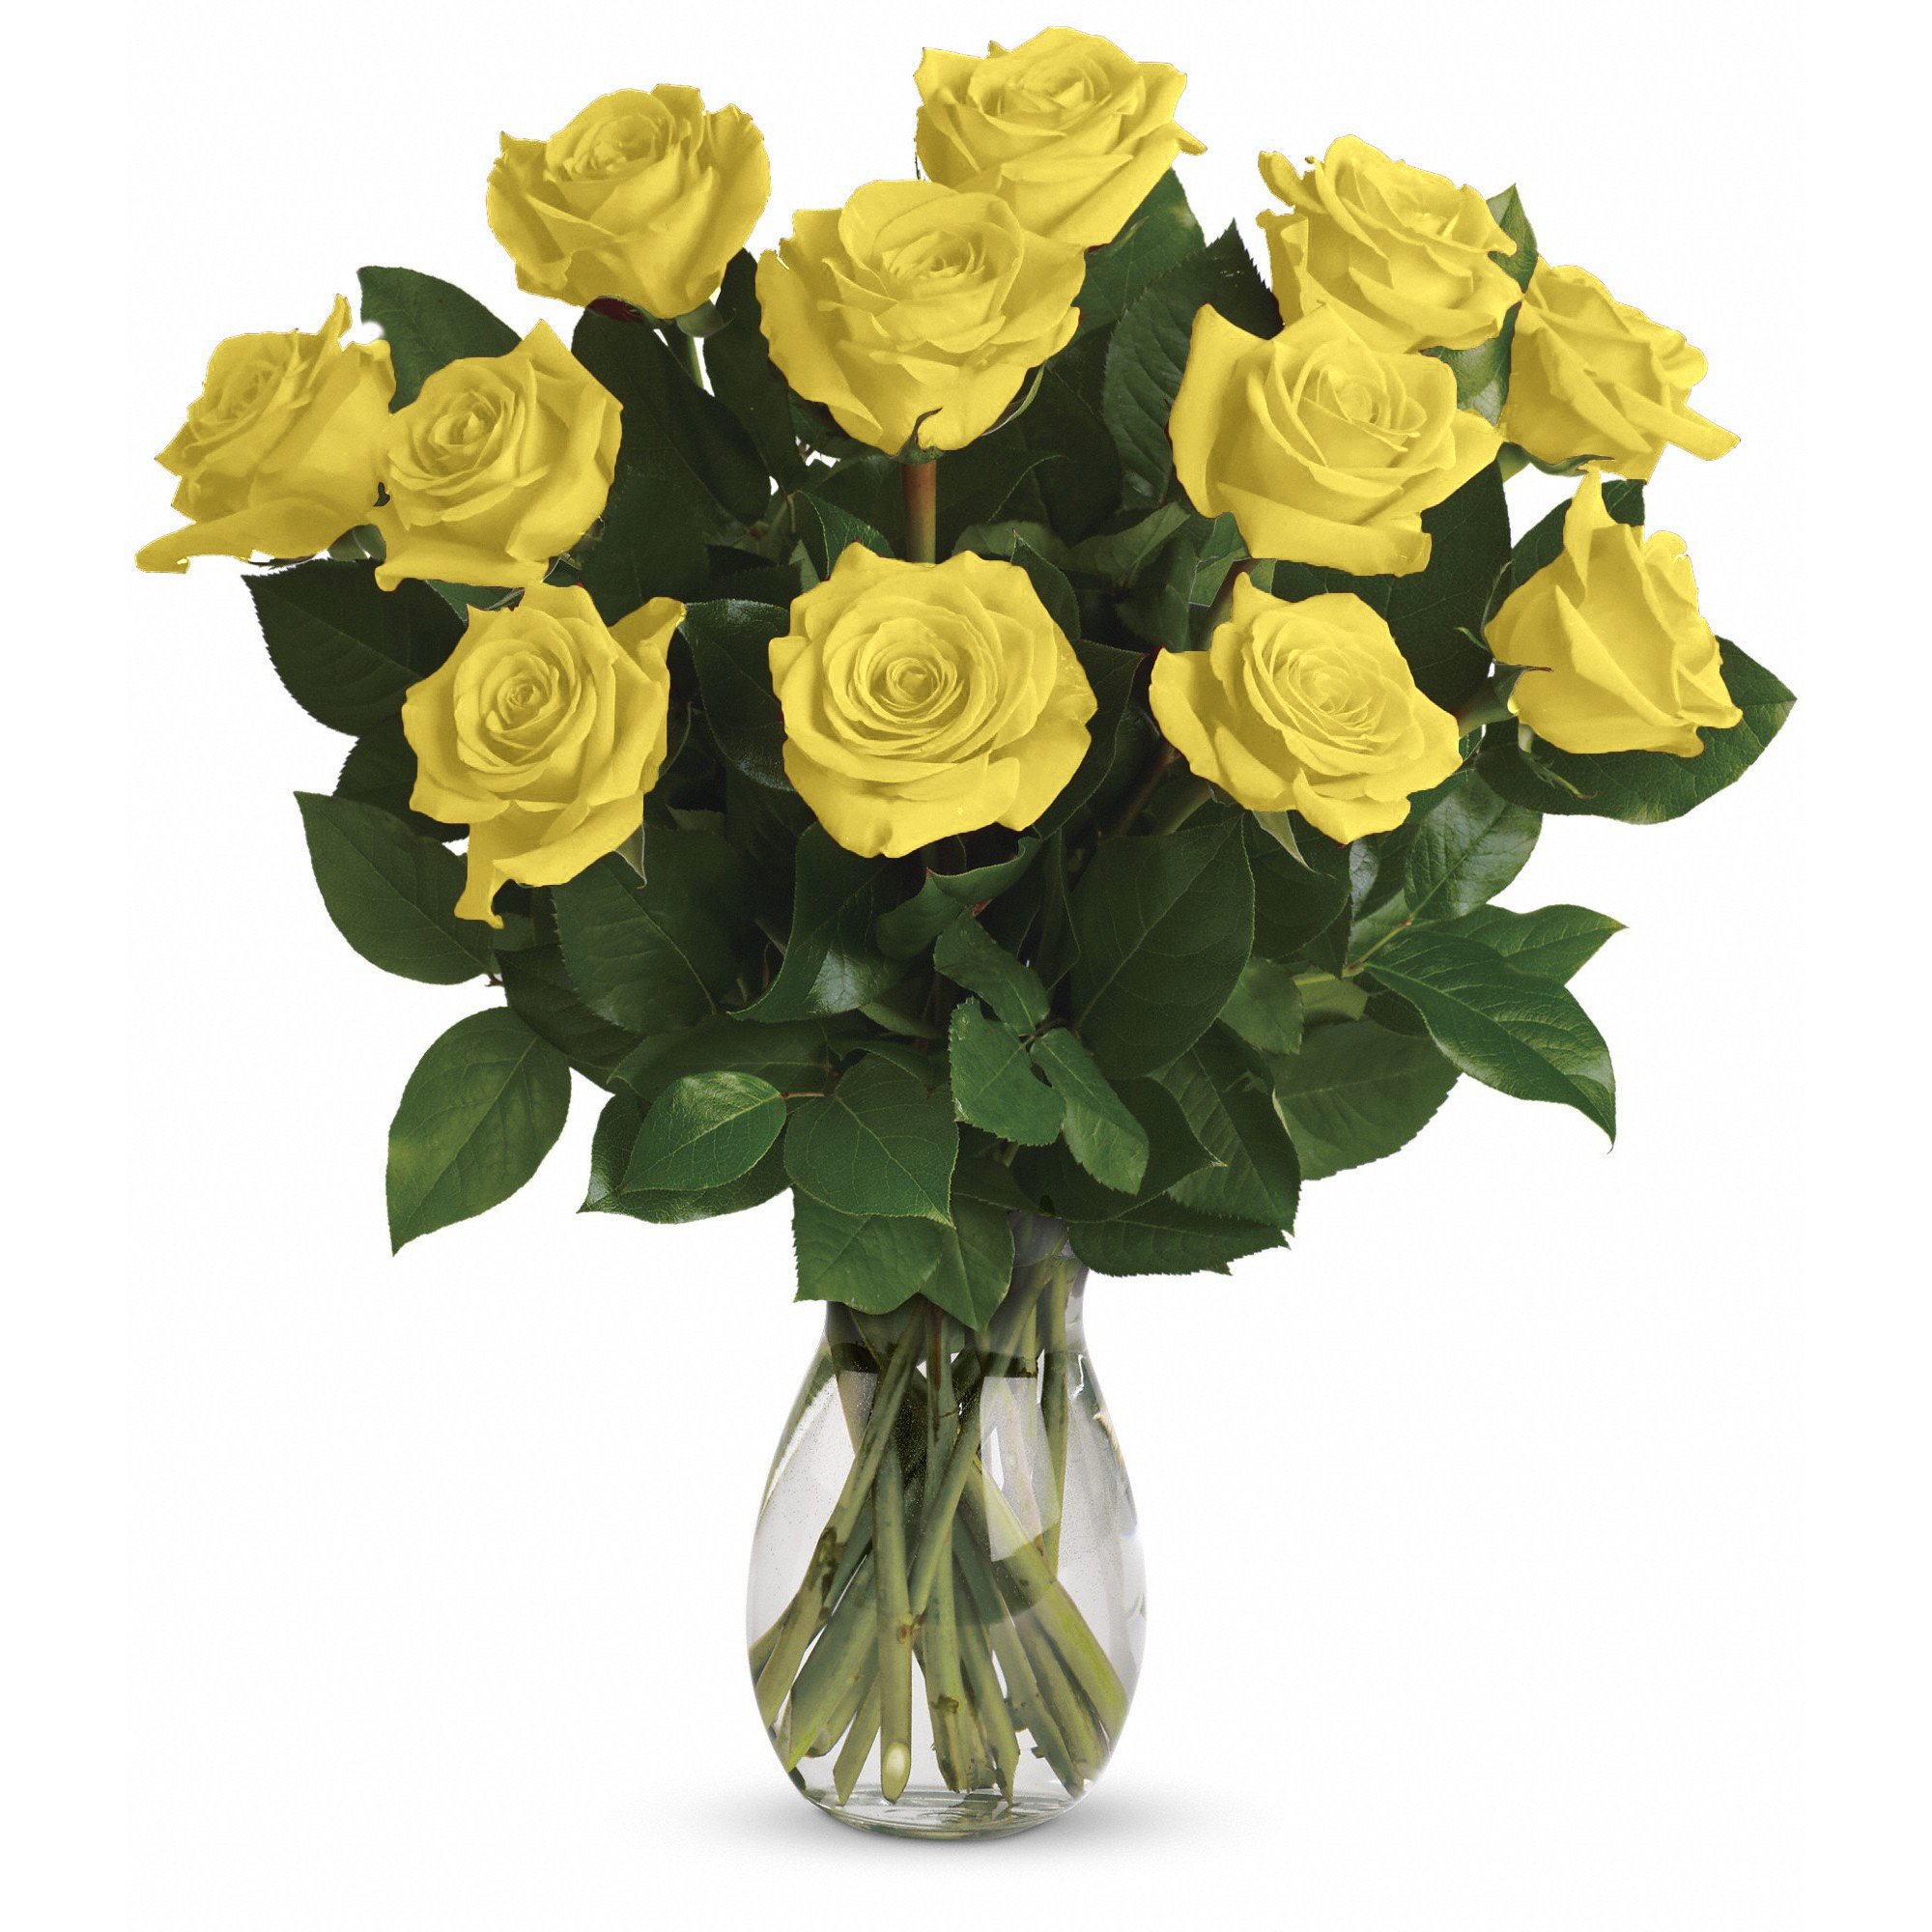 Farm Direct Rose Bouquet of 12 Fresh Cut Roses with Vase (Yellow)